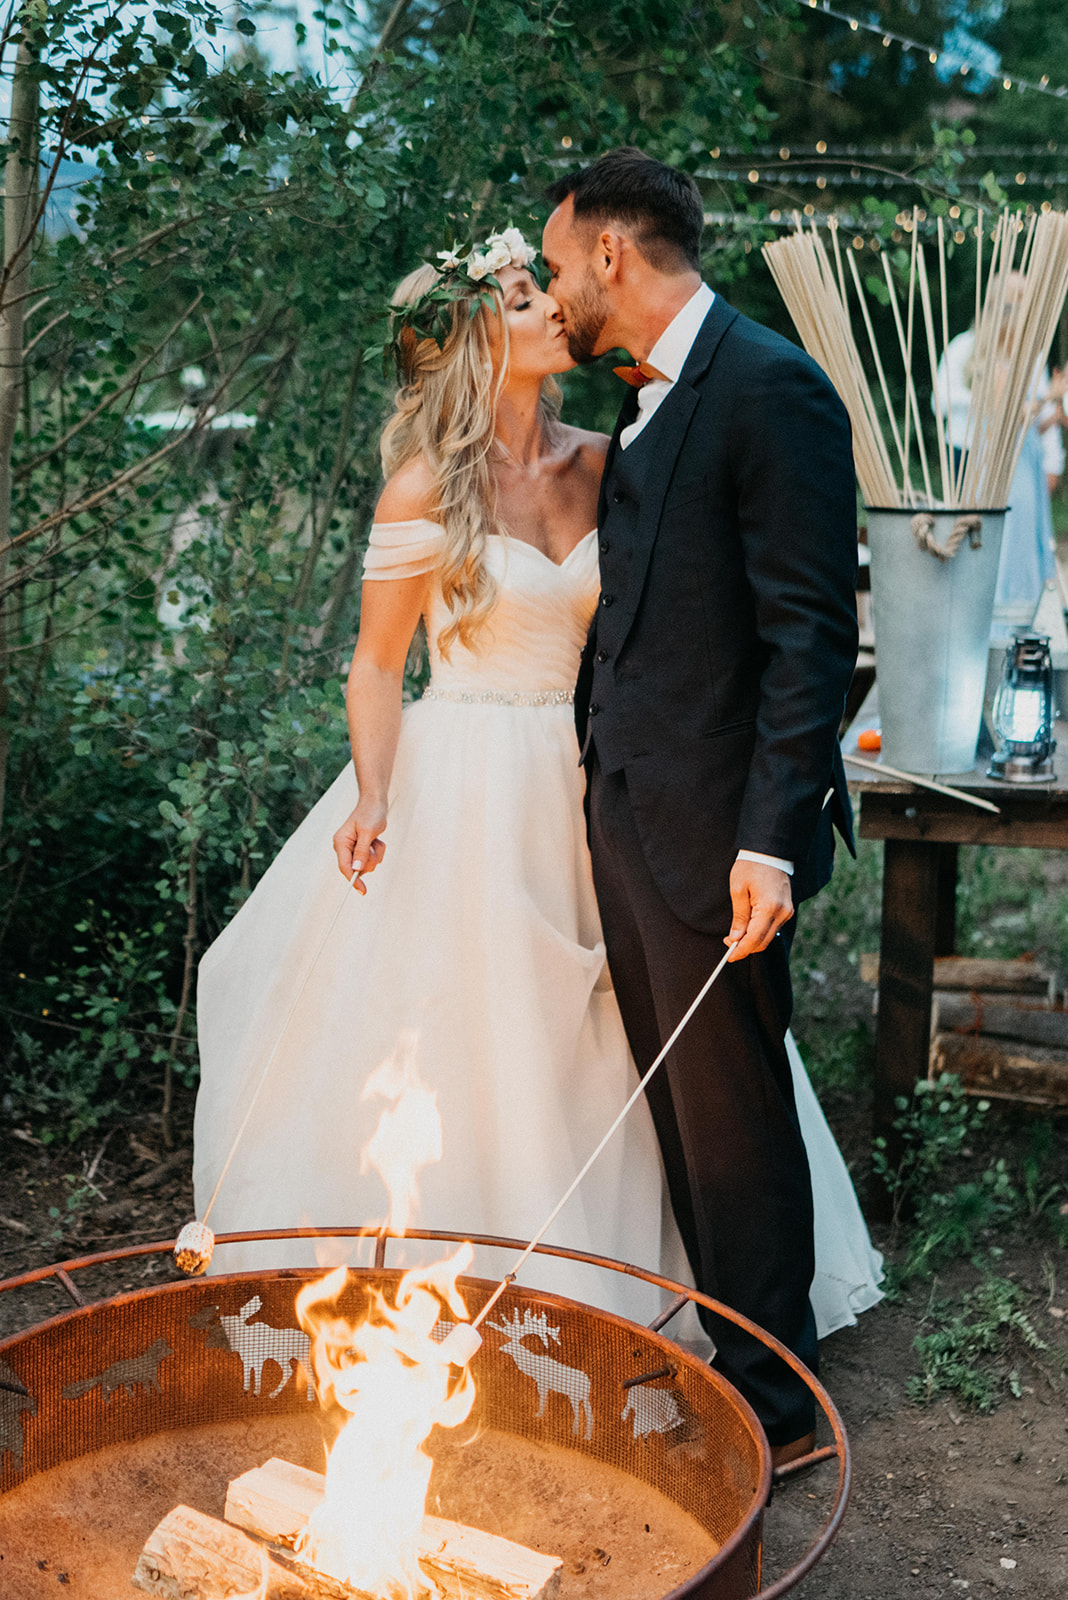 Couple roasting smores at their wedding